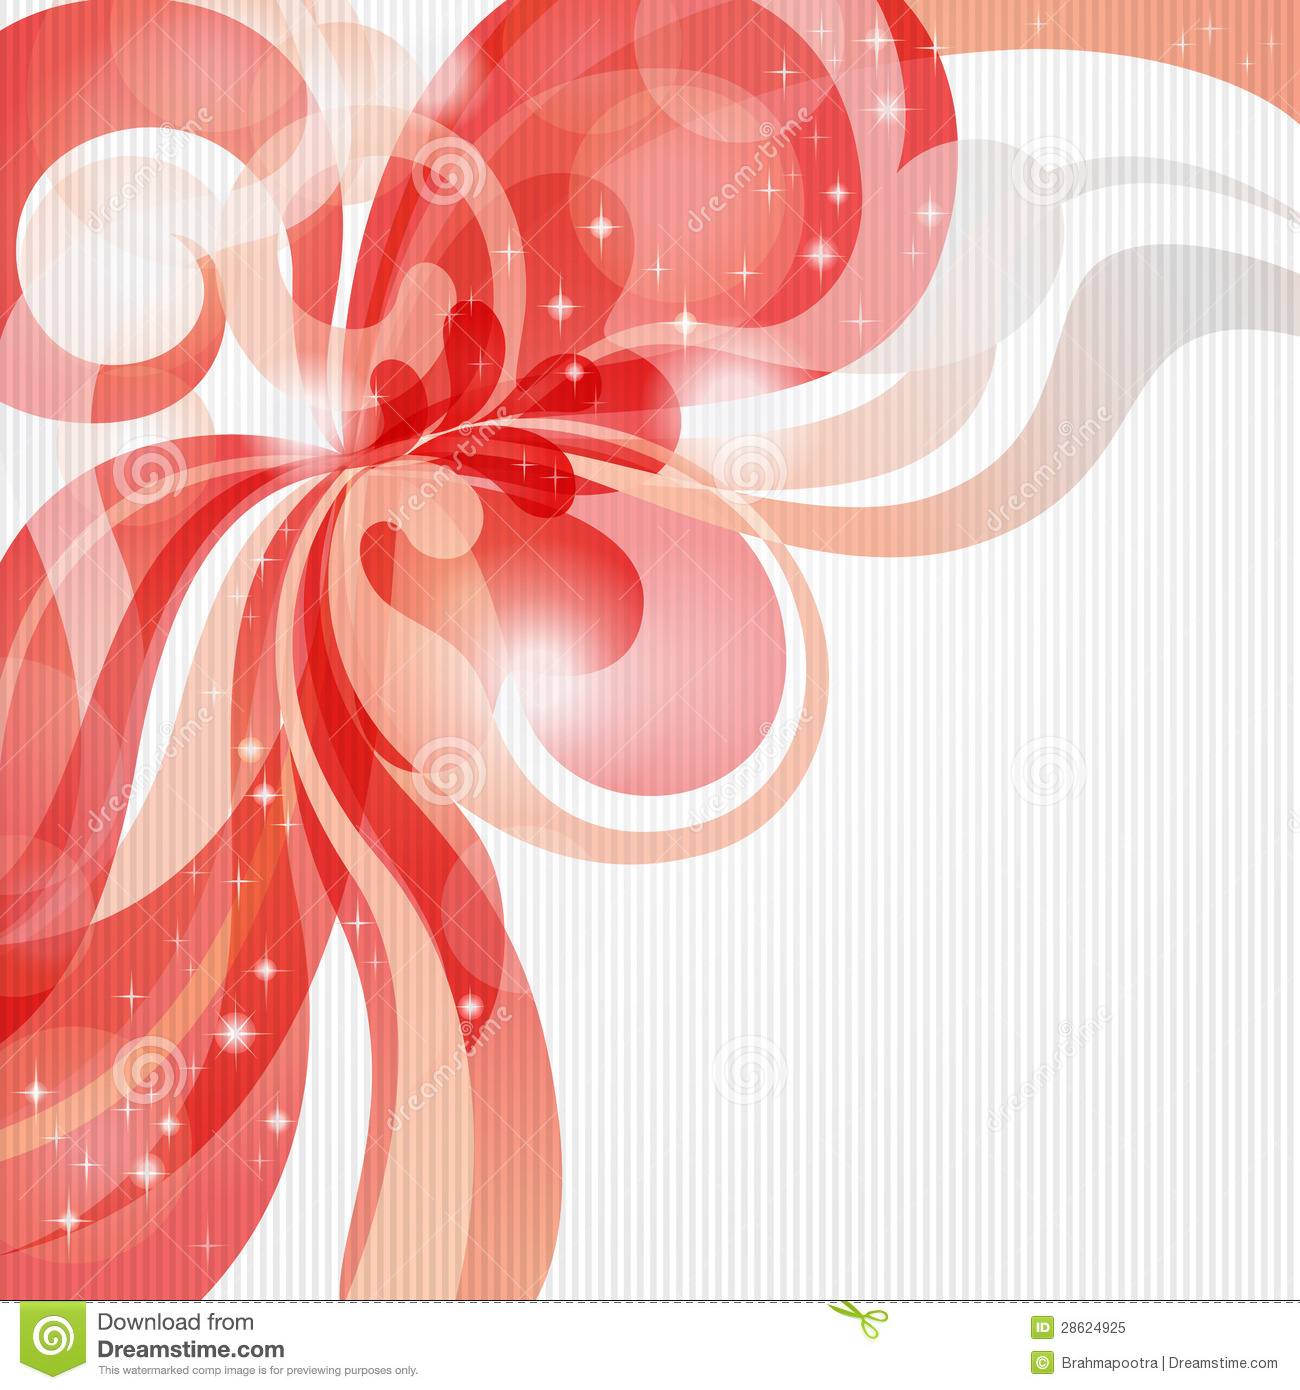 Abstract love theme background in red tones stock vector for Love theme images